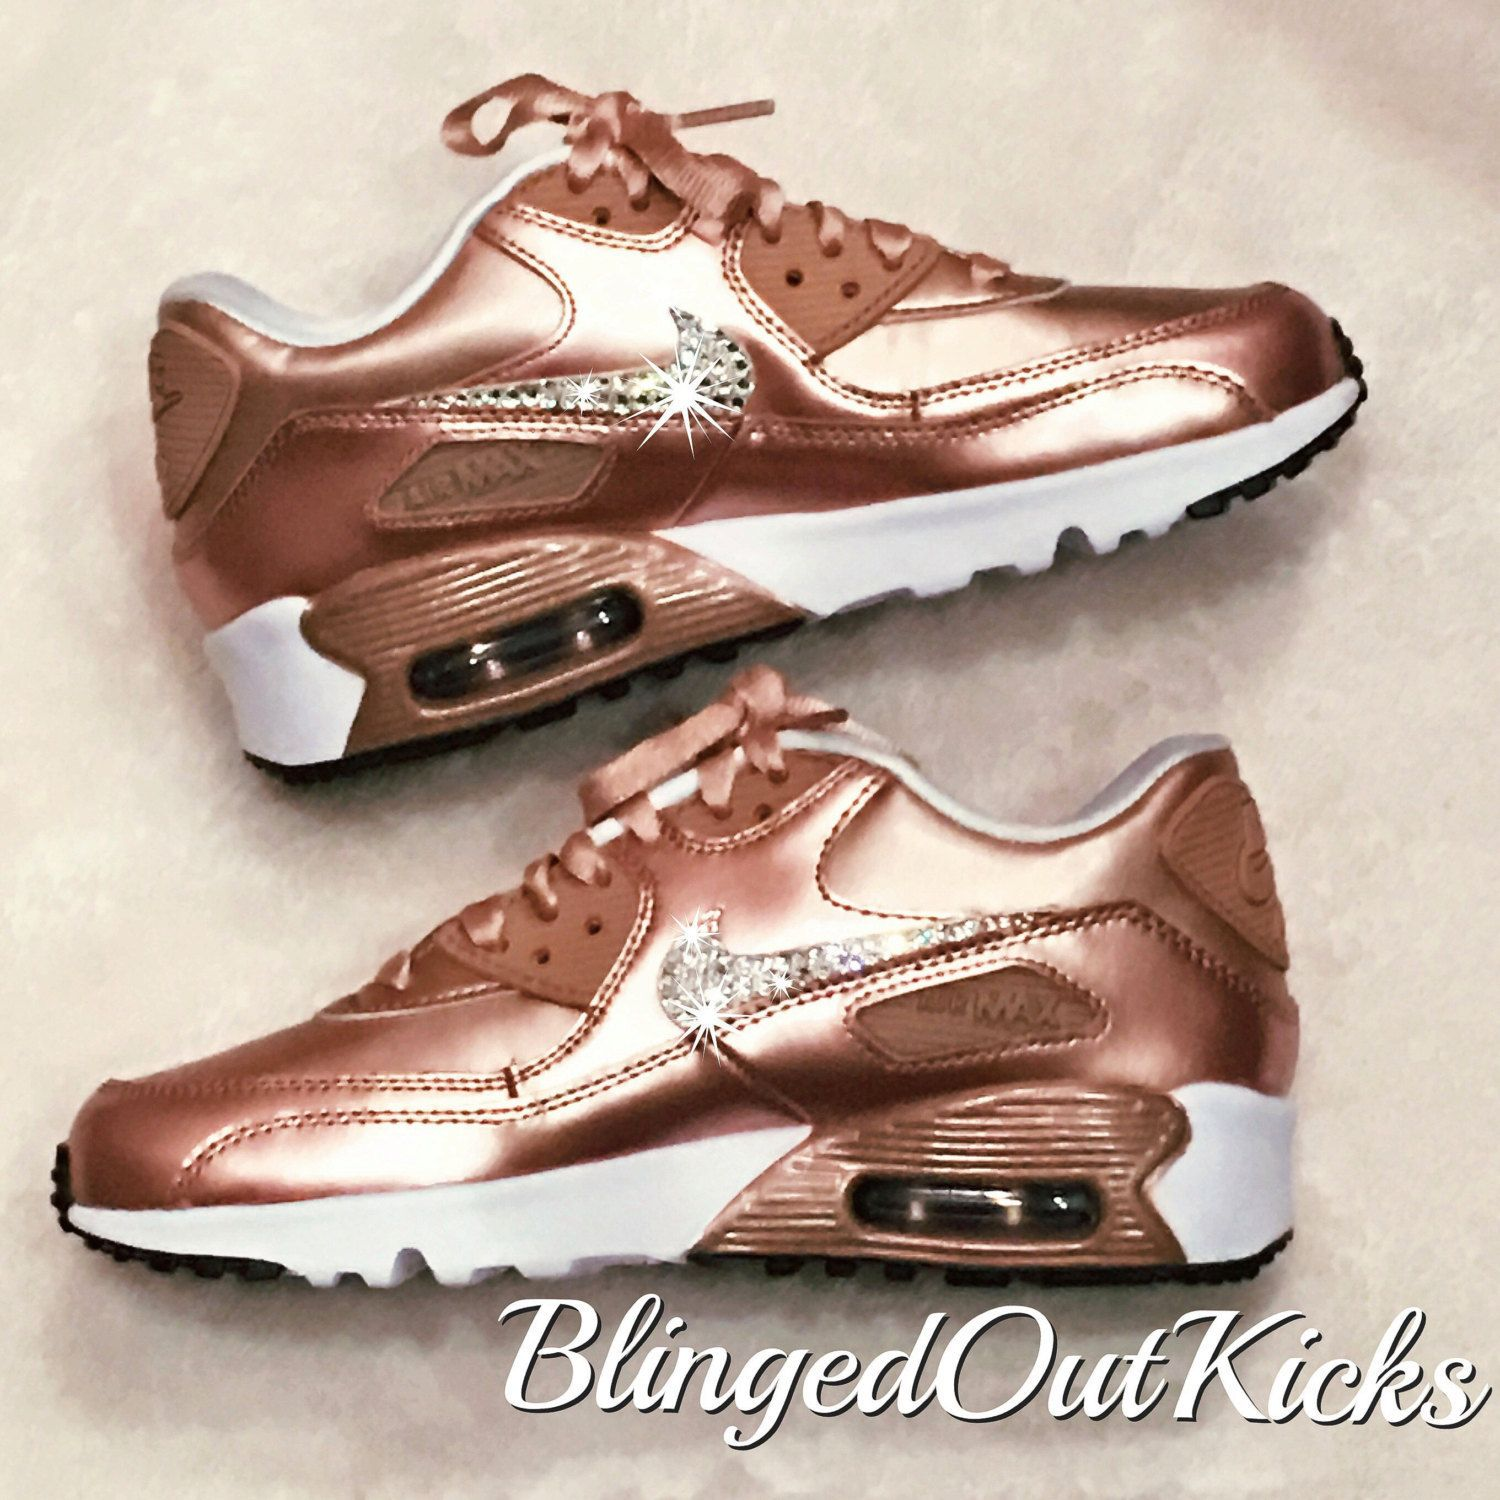 630255f0 Bling Womens Nike Air Max 90 Rose Gold with Swarovski crystals by  ShopBlingedOutKicks on Etsy